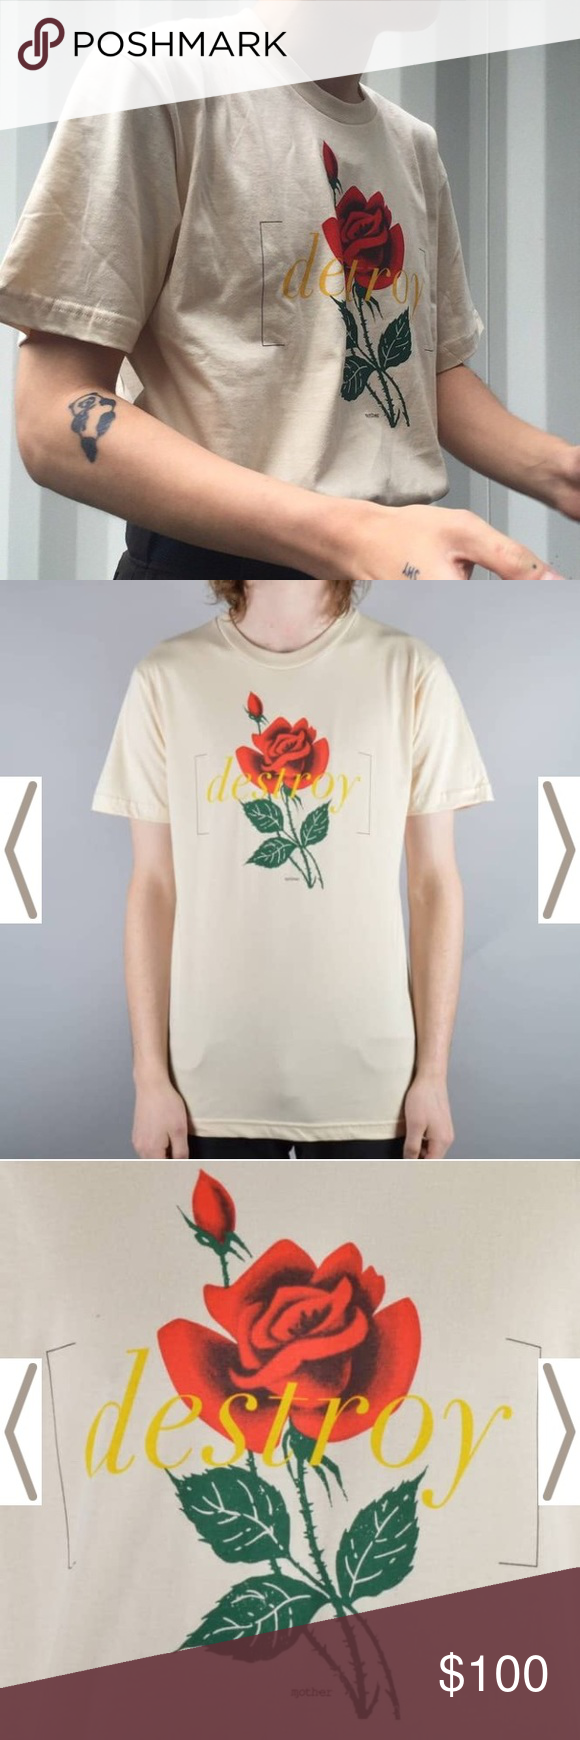 ISO DESTROY ROSE SHIRT ISO DESTROY ROSE SHIRT Urban Outfitters Tops Tees - Short Sleeve